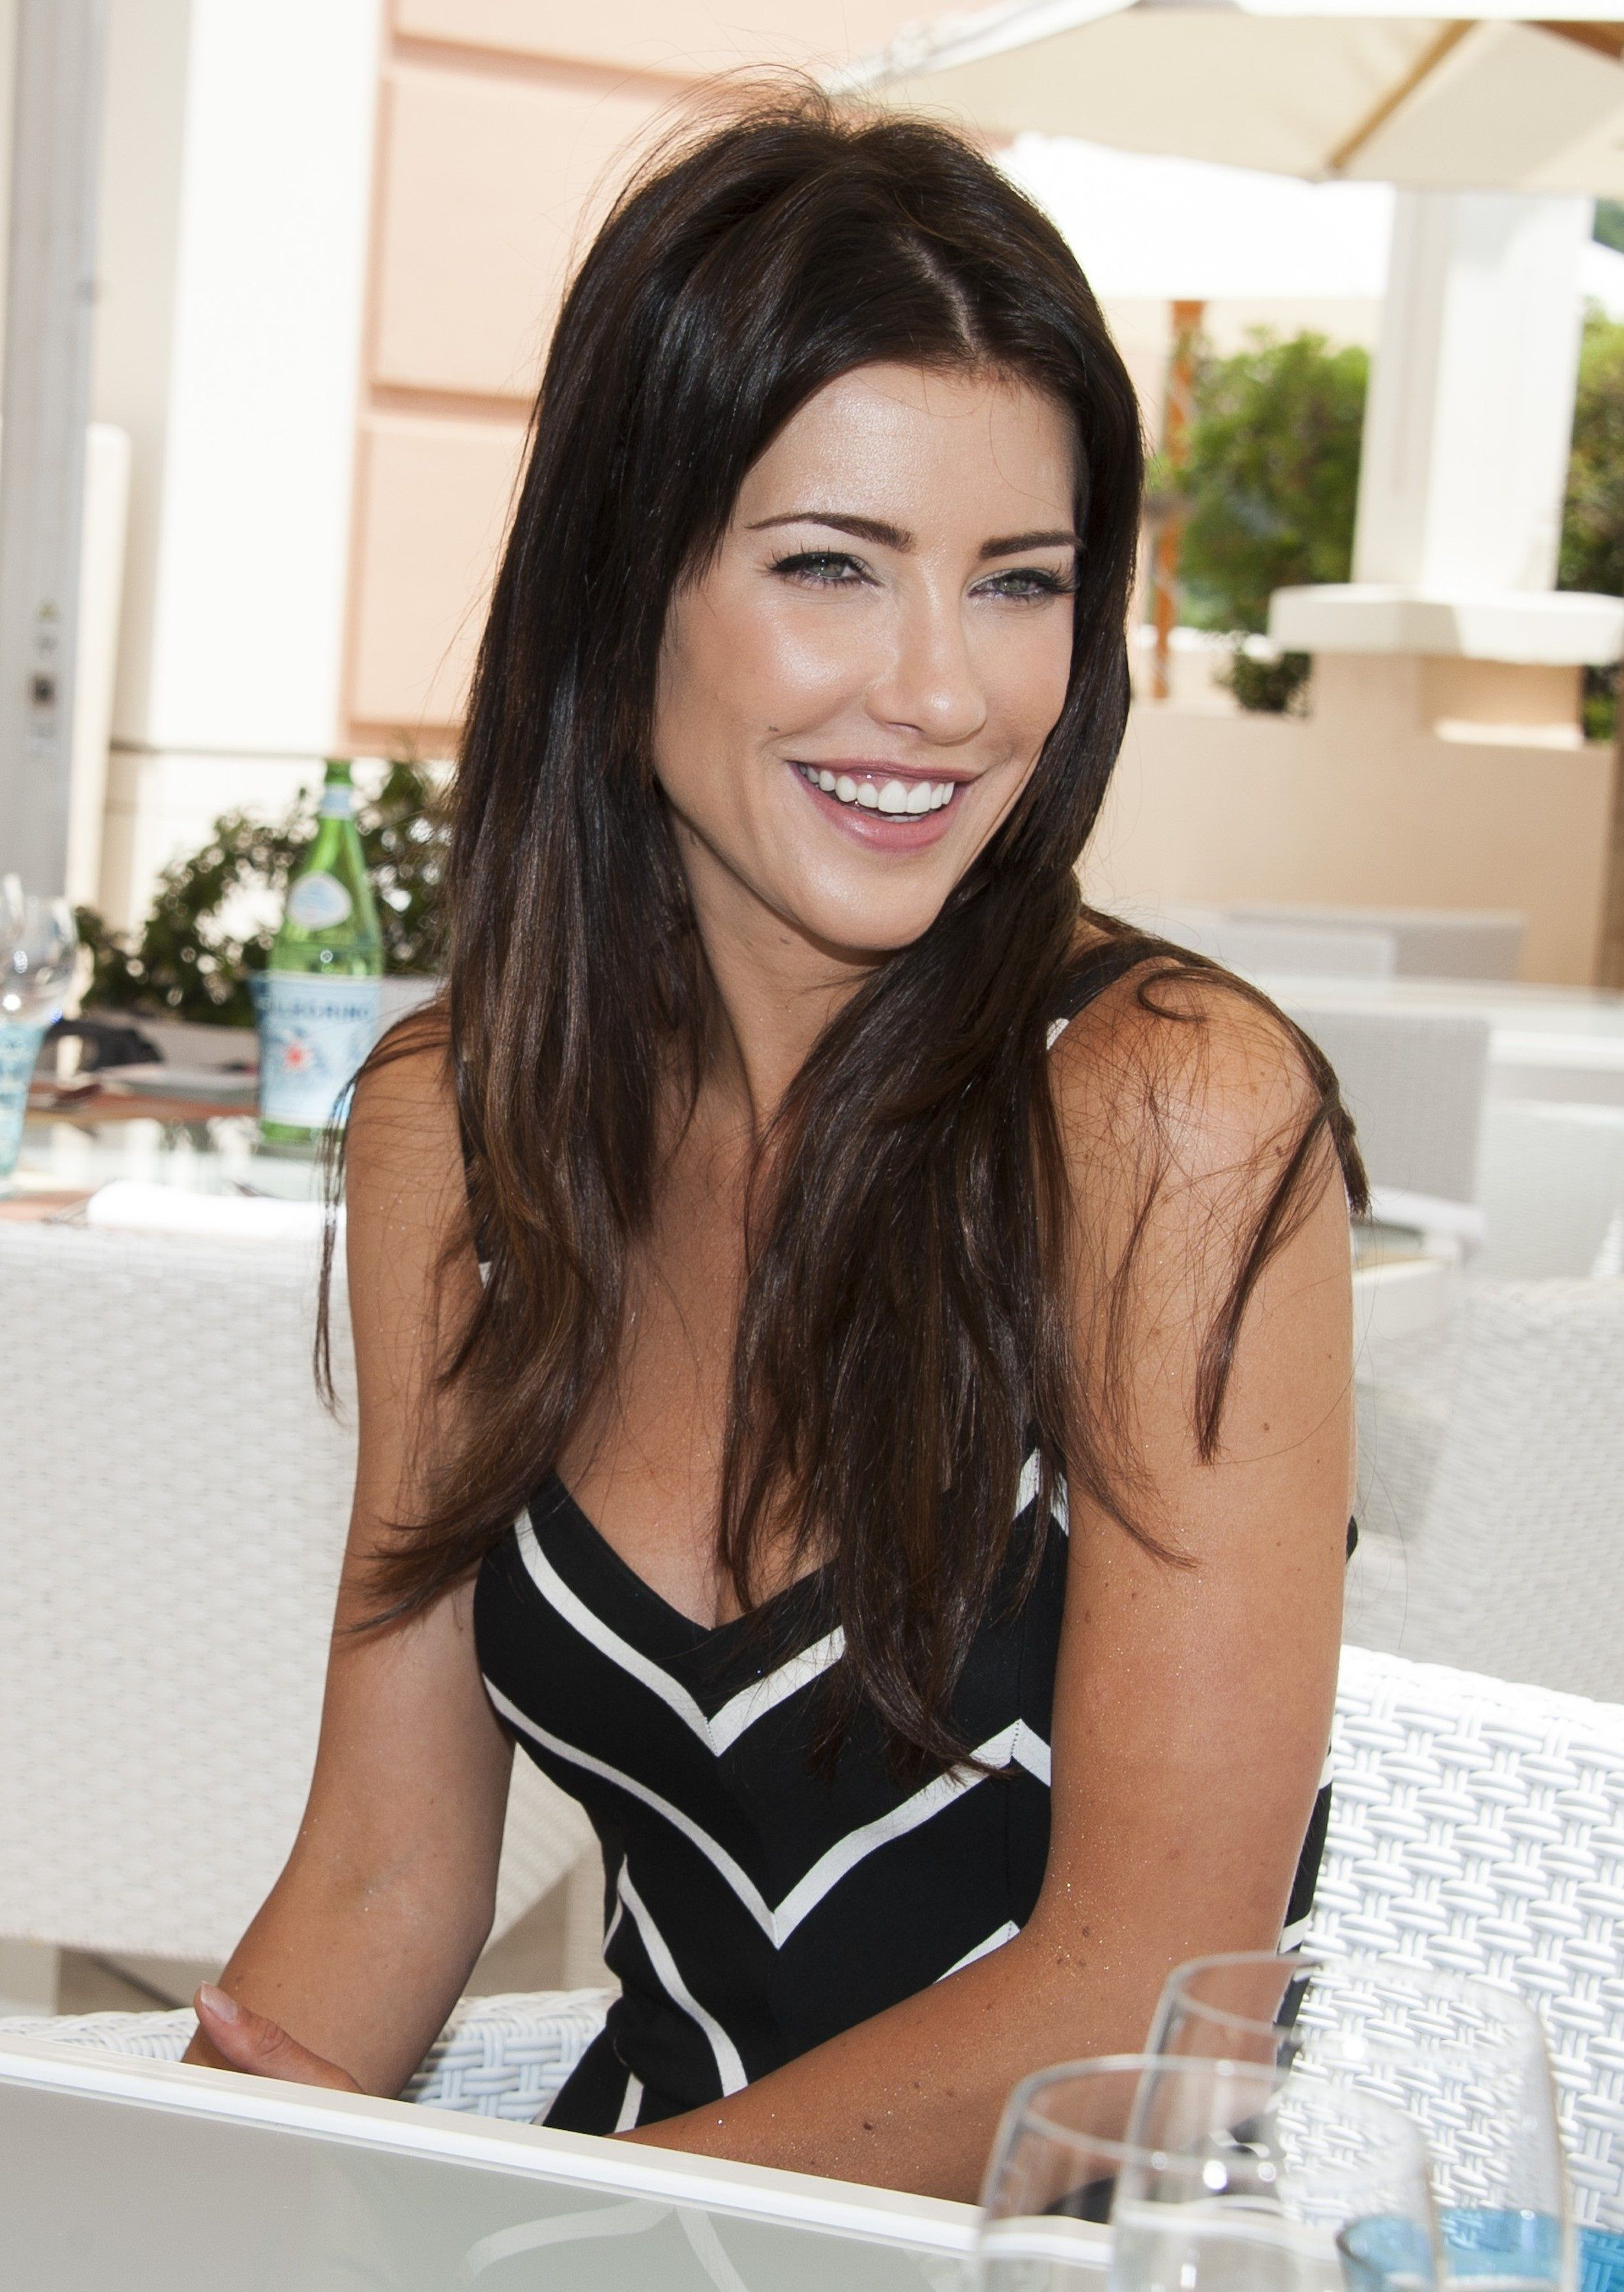 jacqueline macinnes wood plastic surgeryjacqueline macinnes wood gif, jacqueline macinnes wood final destination 5, jacqueline macinnes wood forum, jacqueline macinnes wood wallpaper, jacqueline macinnes wood after hours, jacqueline macinnes wood leather, jacqueline macinnes wood instagram, jacqueline macinnes wood boyfriend, jacqueline macinnes wood photo, jacqueline macinnes wood, jacqueline macinnes wood arrow, jacqueline macinnes wood facebook, jacqueline macinnes wood and daren kagasoff, jacqueline macinnes wood imdb, jacqueline macinnes wood married, jacqueline macinnes wood plastic surgery, jacqueline macinnes wood net worth, jacqueline macinnes wood twitter, jacqueline macinnes wood rifatta, jacqueline macinnes wood 2015